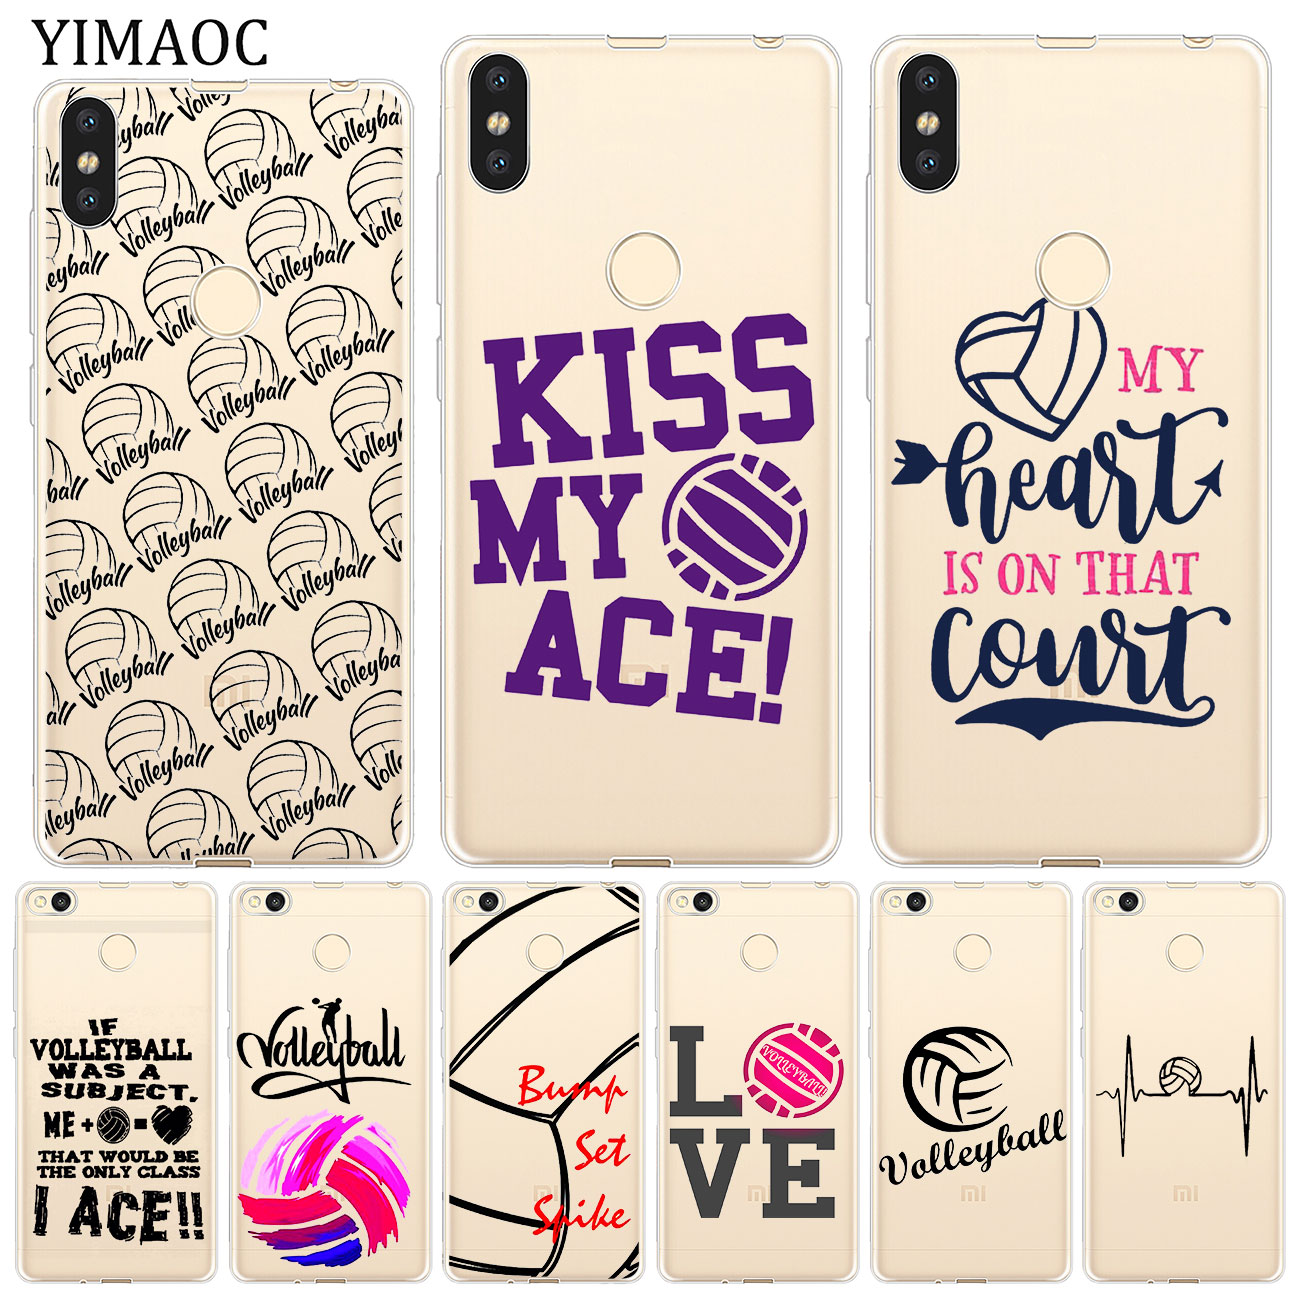 YIMAOC Volleyball Sports Soft Case for Xiaomi Mi 9 9T CC9 CC9E A3 Pro 8 SE A2 Lite A1 MiX 2S MAX 3 p